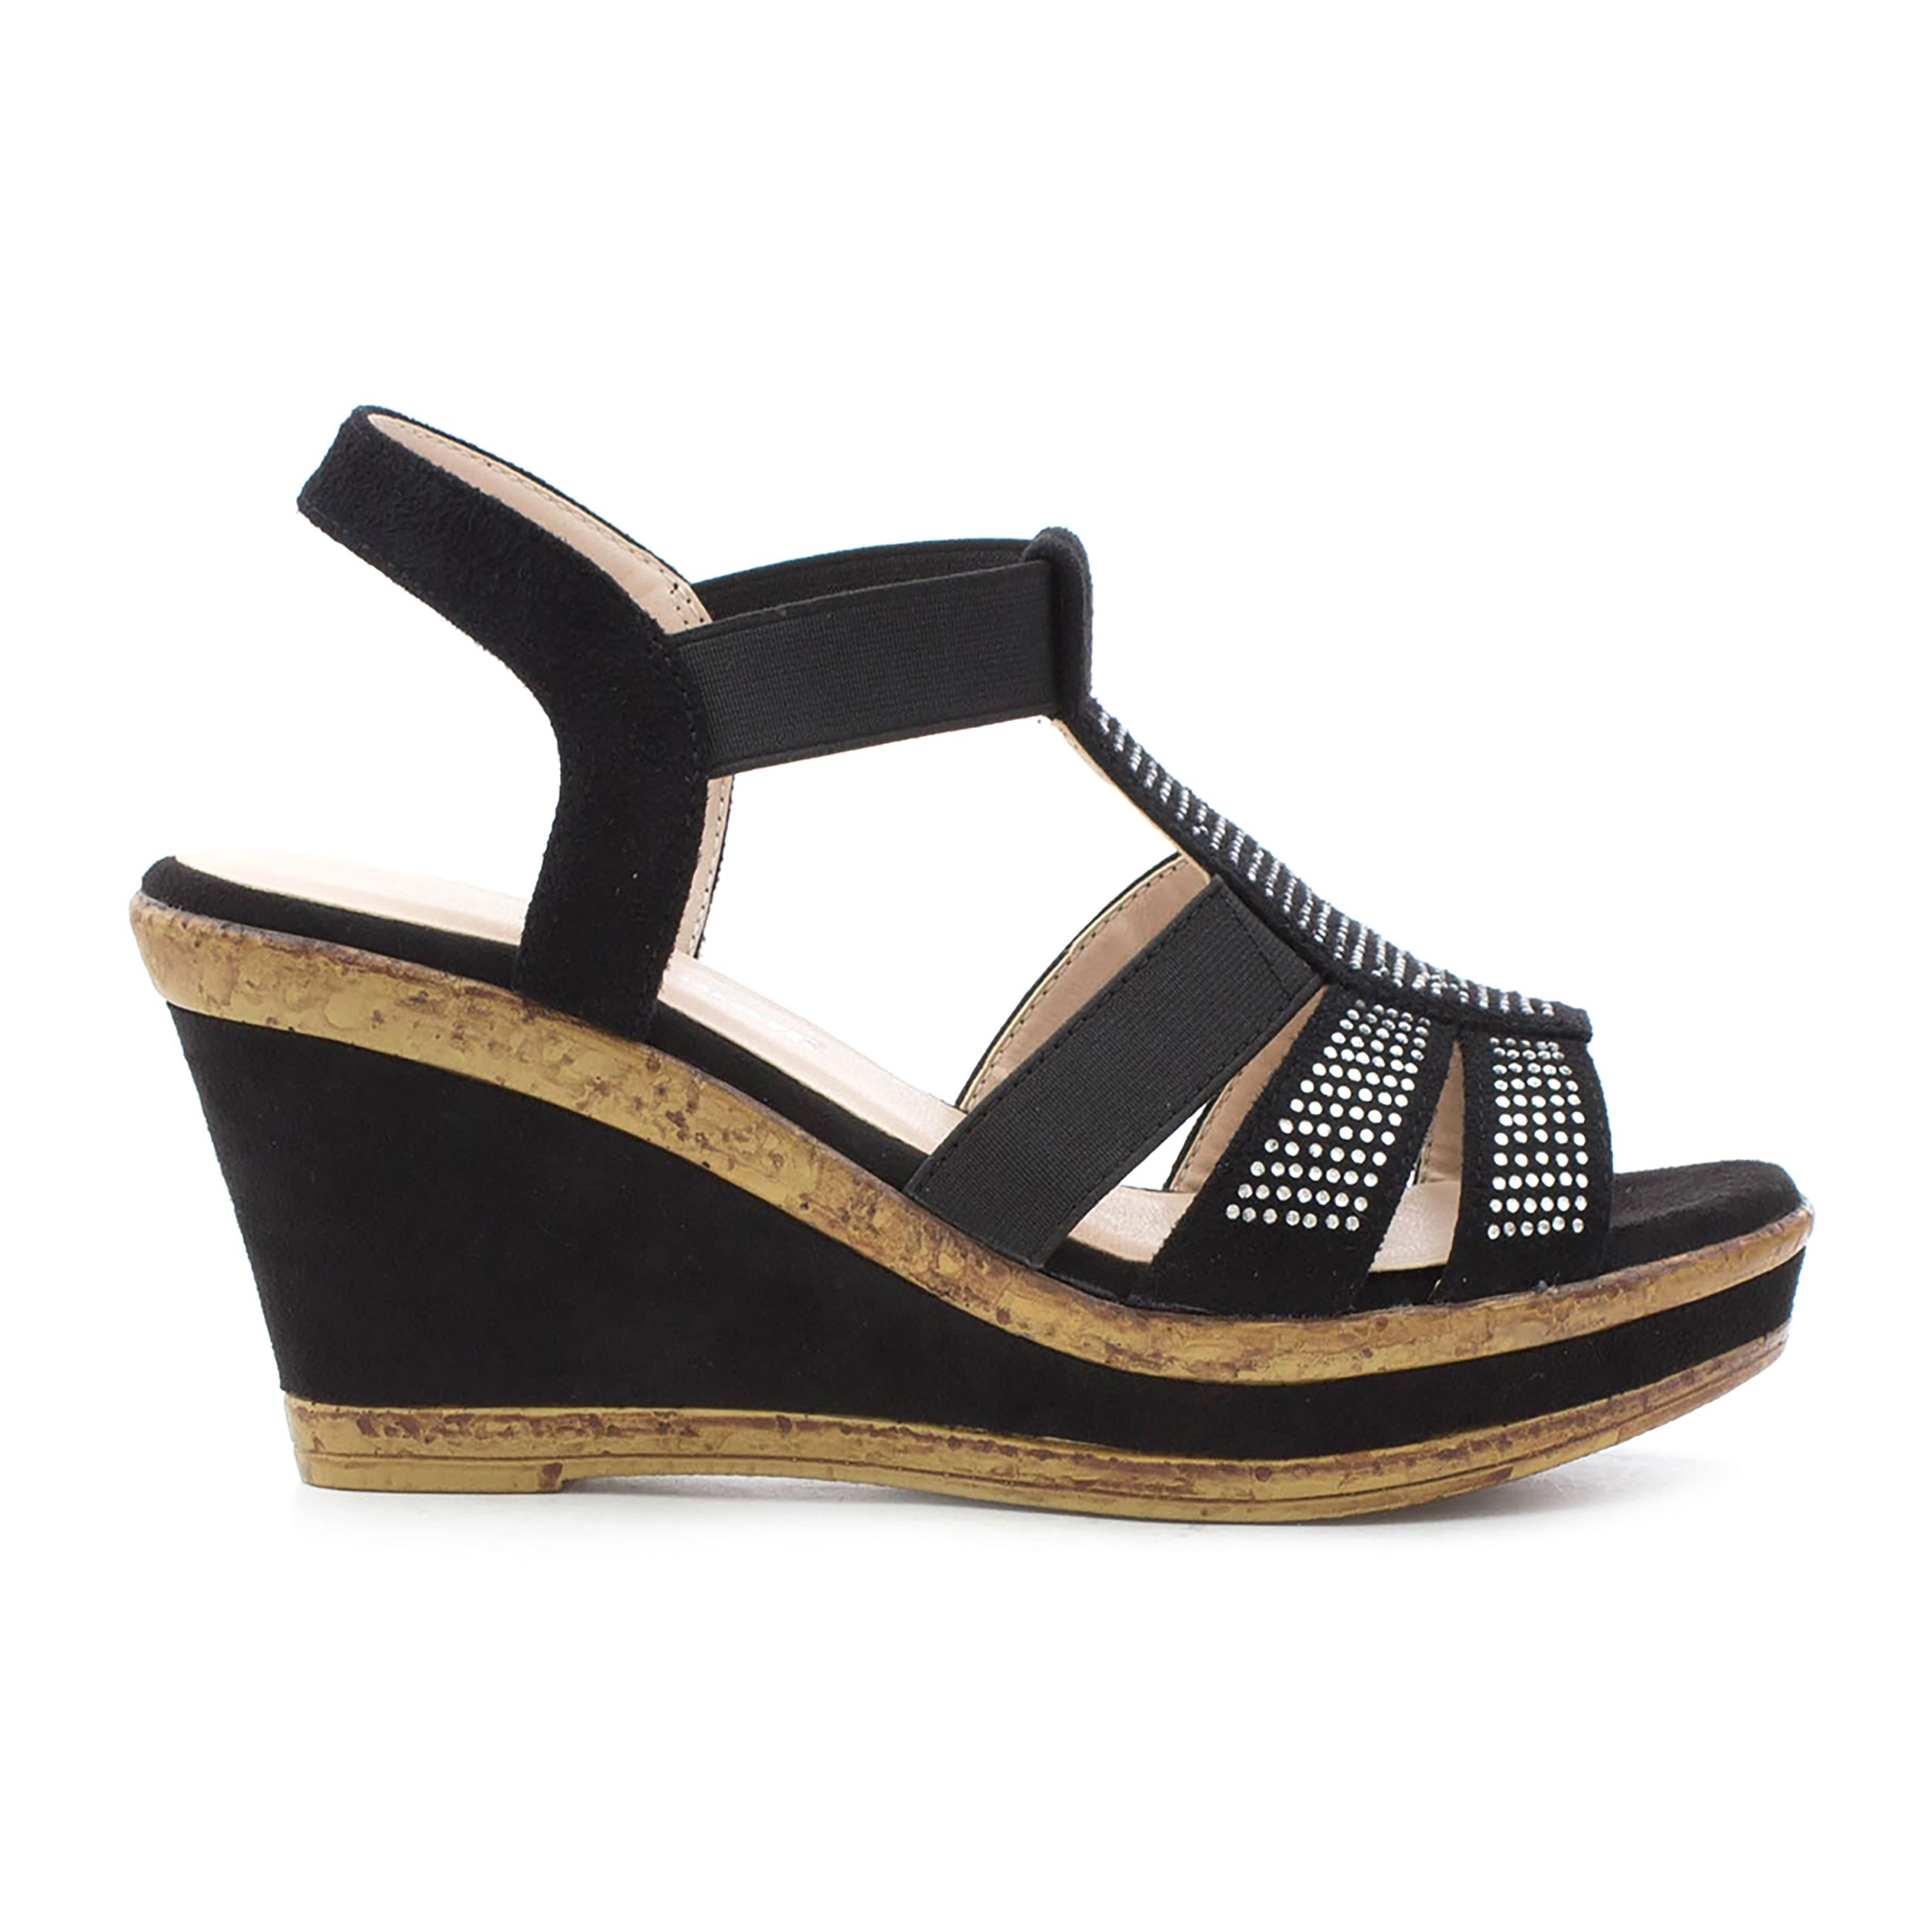 1dcdbc8325c Cushion Walk Womens Black High Wedge Sandal | SHOE ZONE | SS18 ...